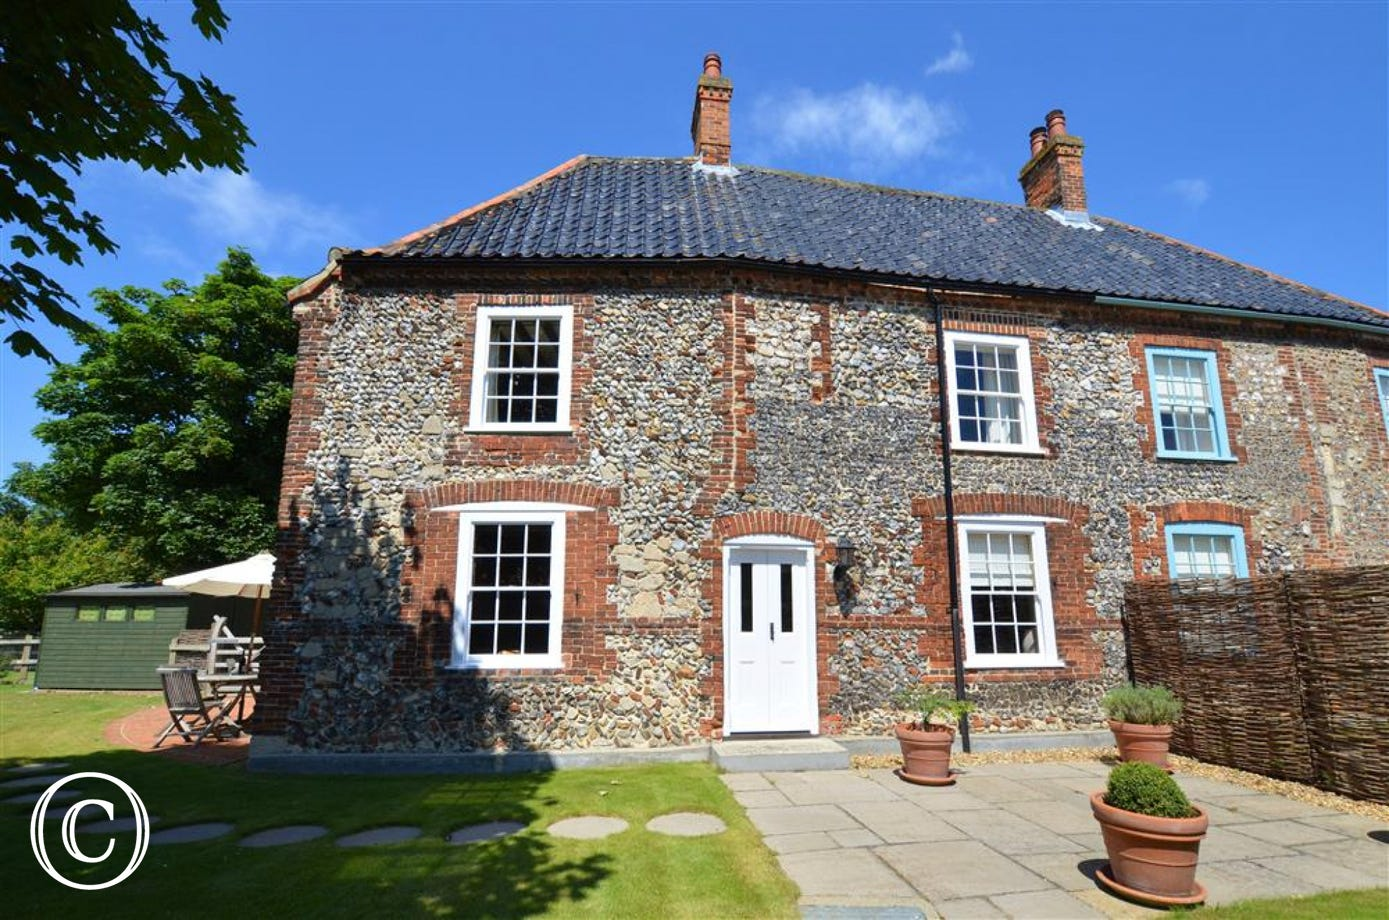 This is the rear of this attractive brick and flint property